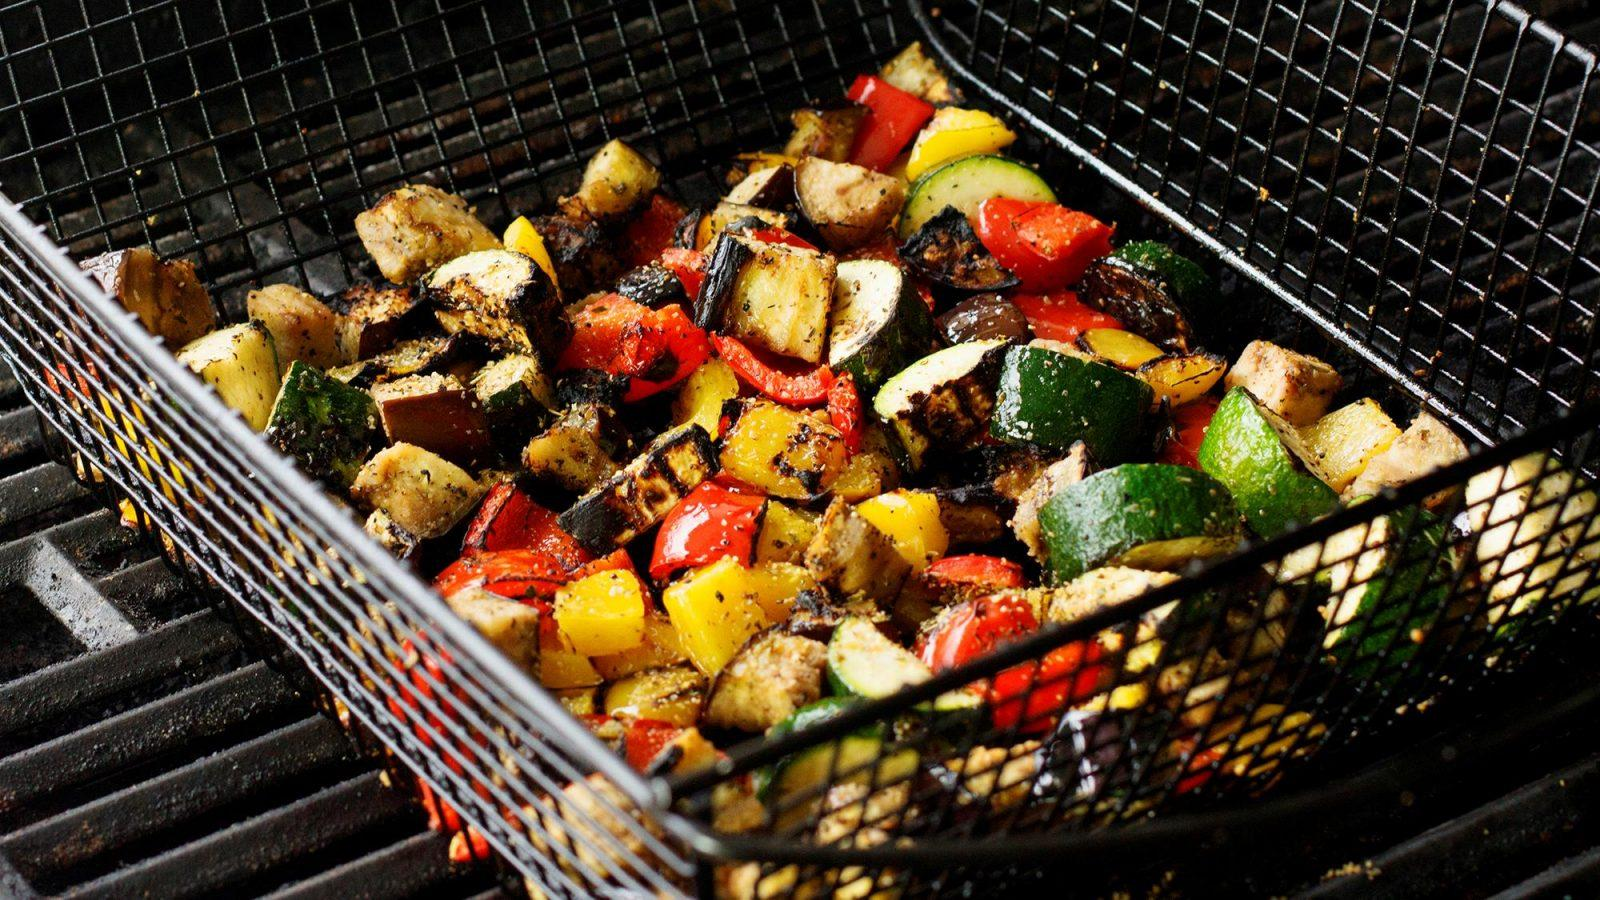 Grilling Vegetables The Healthy Barbecue Option